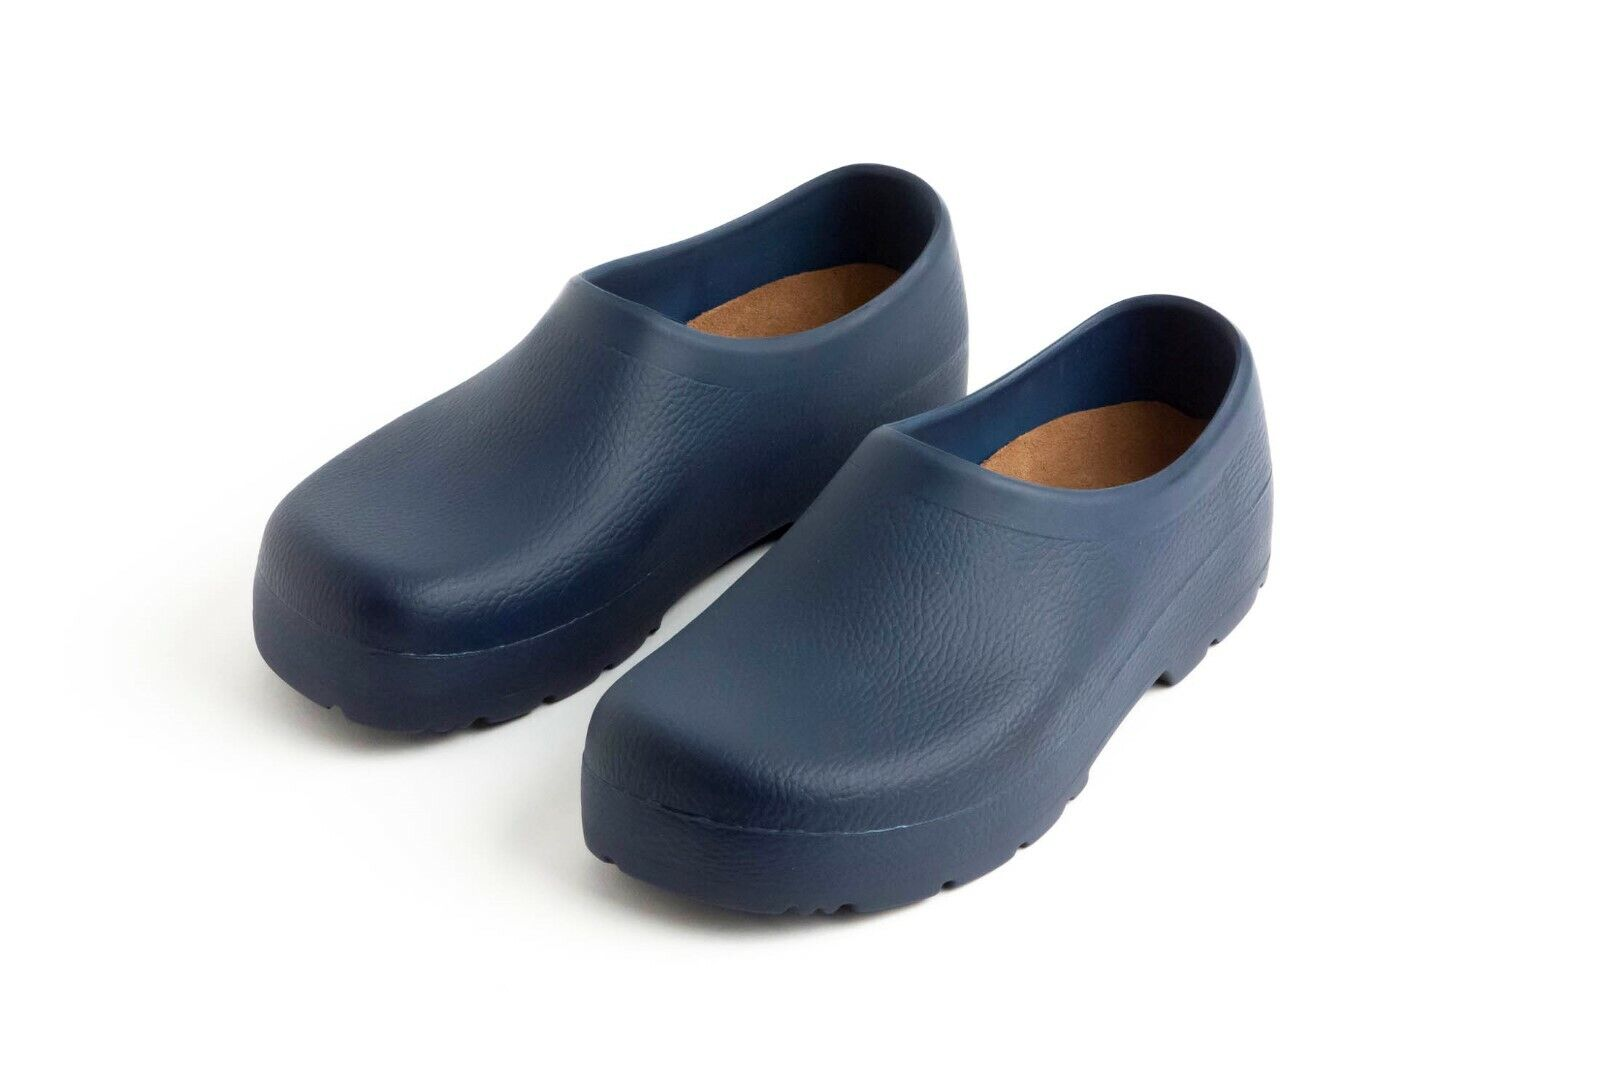 Mens Chef Garden tutti Weather Comfort Clogs sautope Navy tutti Dimensiones Medium (D,M)